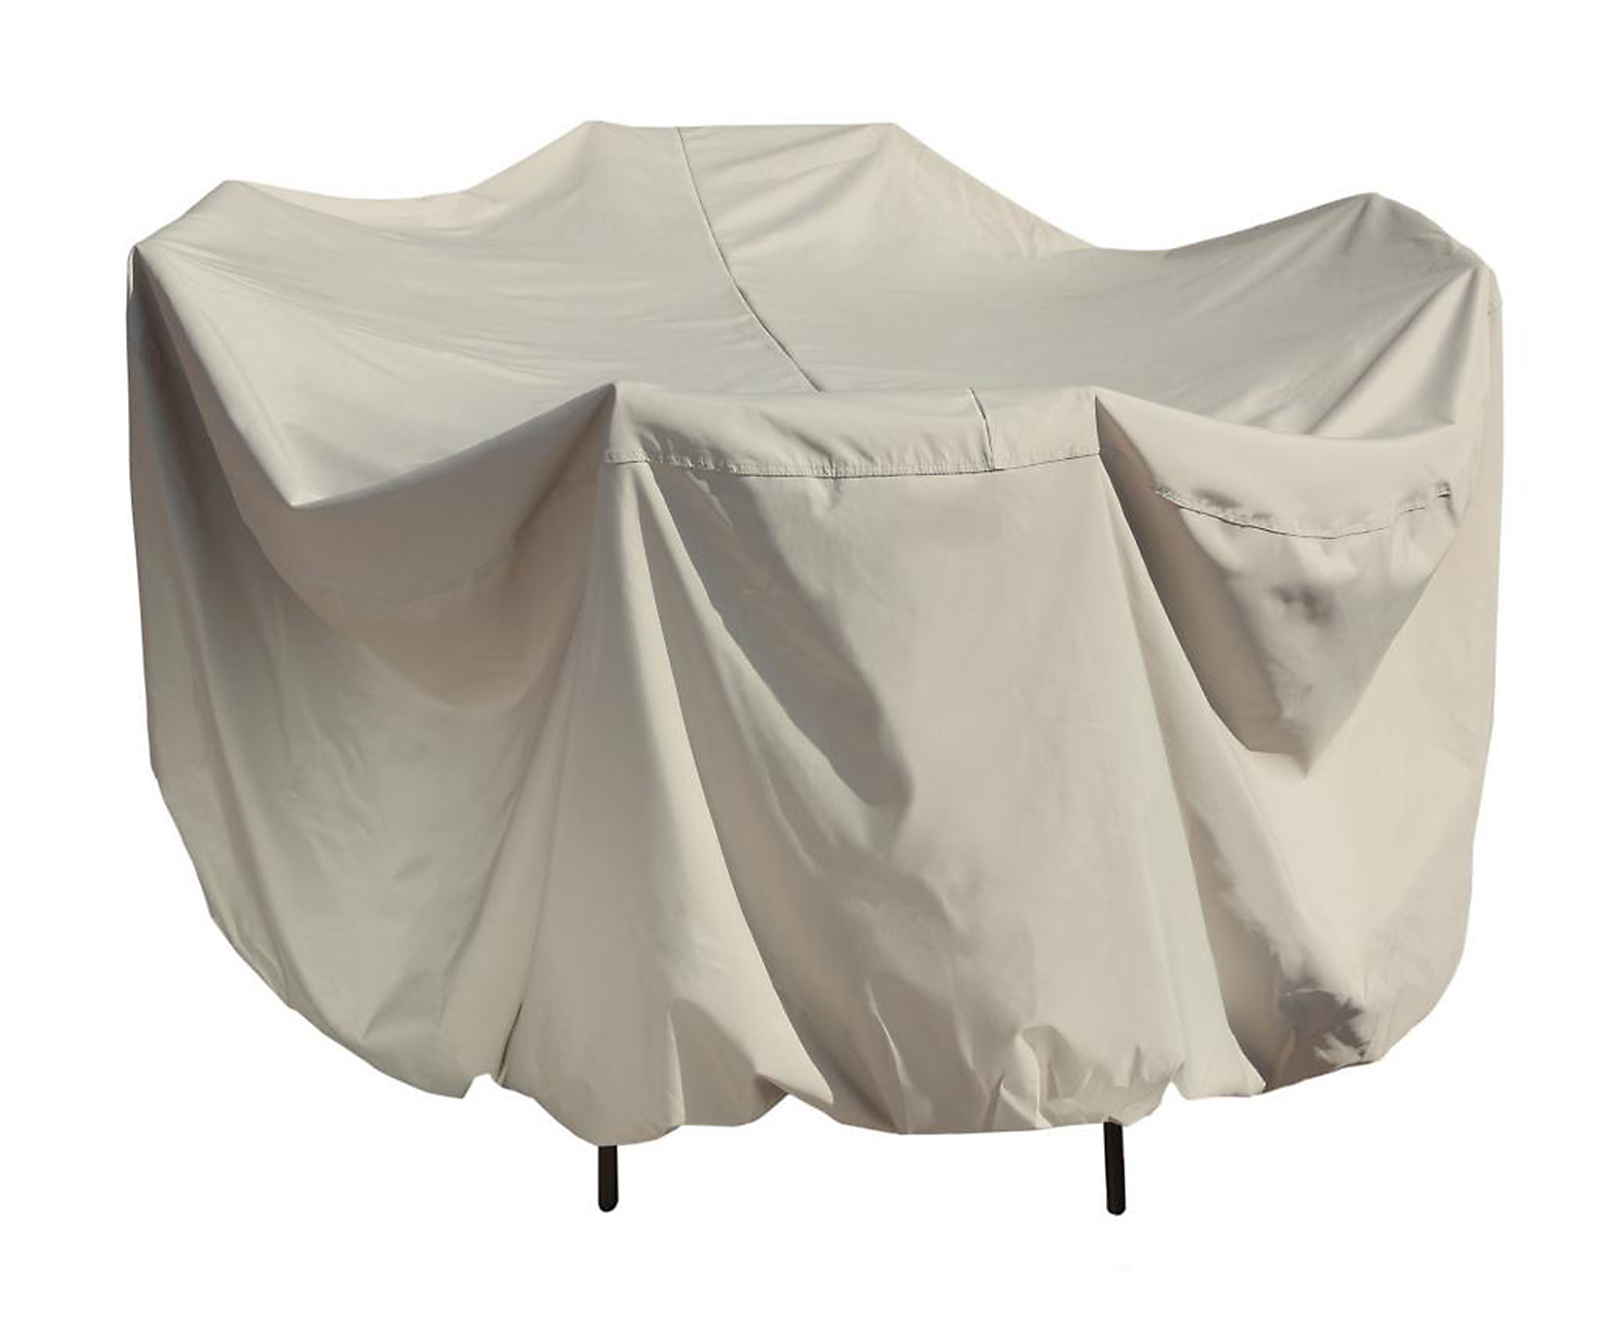 your chair covers inc coupon code white wicker rocking uk island umbrella winter cover for 54 quot round patio table